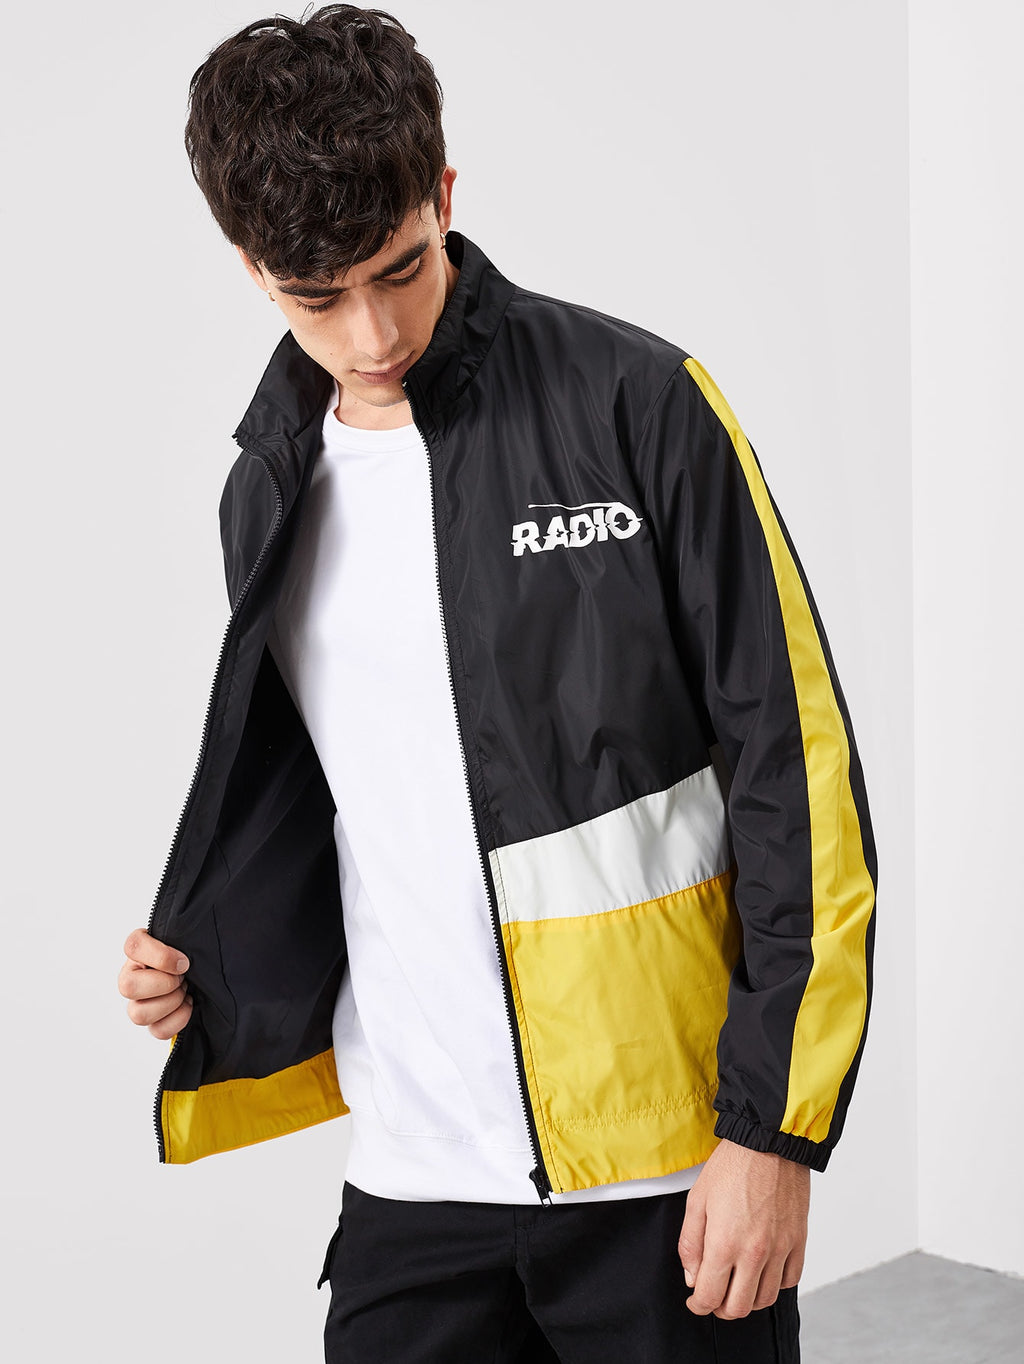 Workout Jackets - Men Zip Up Color Block Windbreaker Jacket